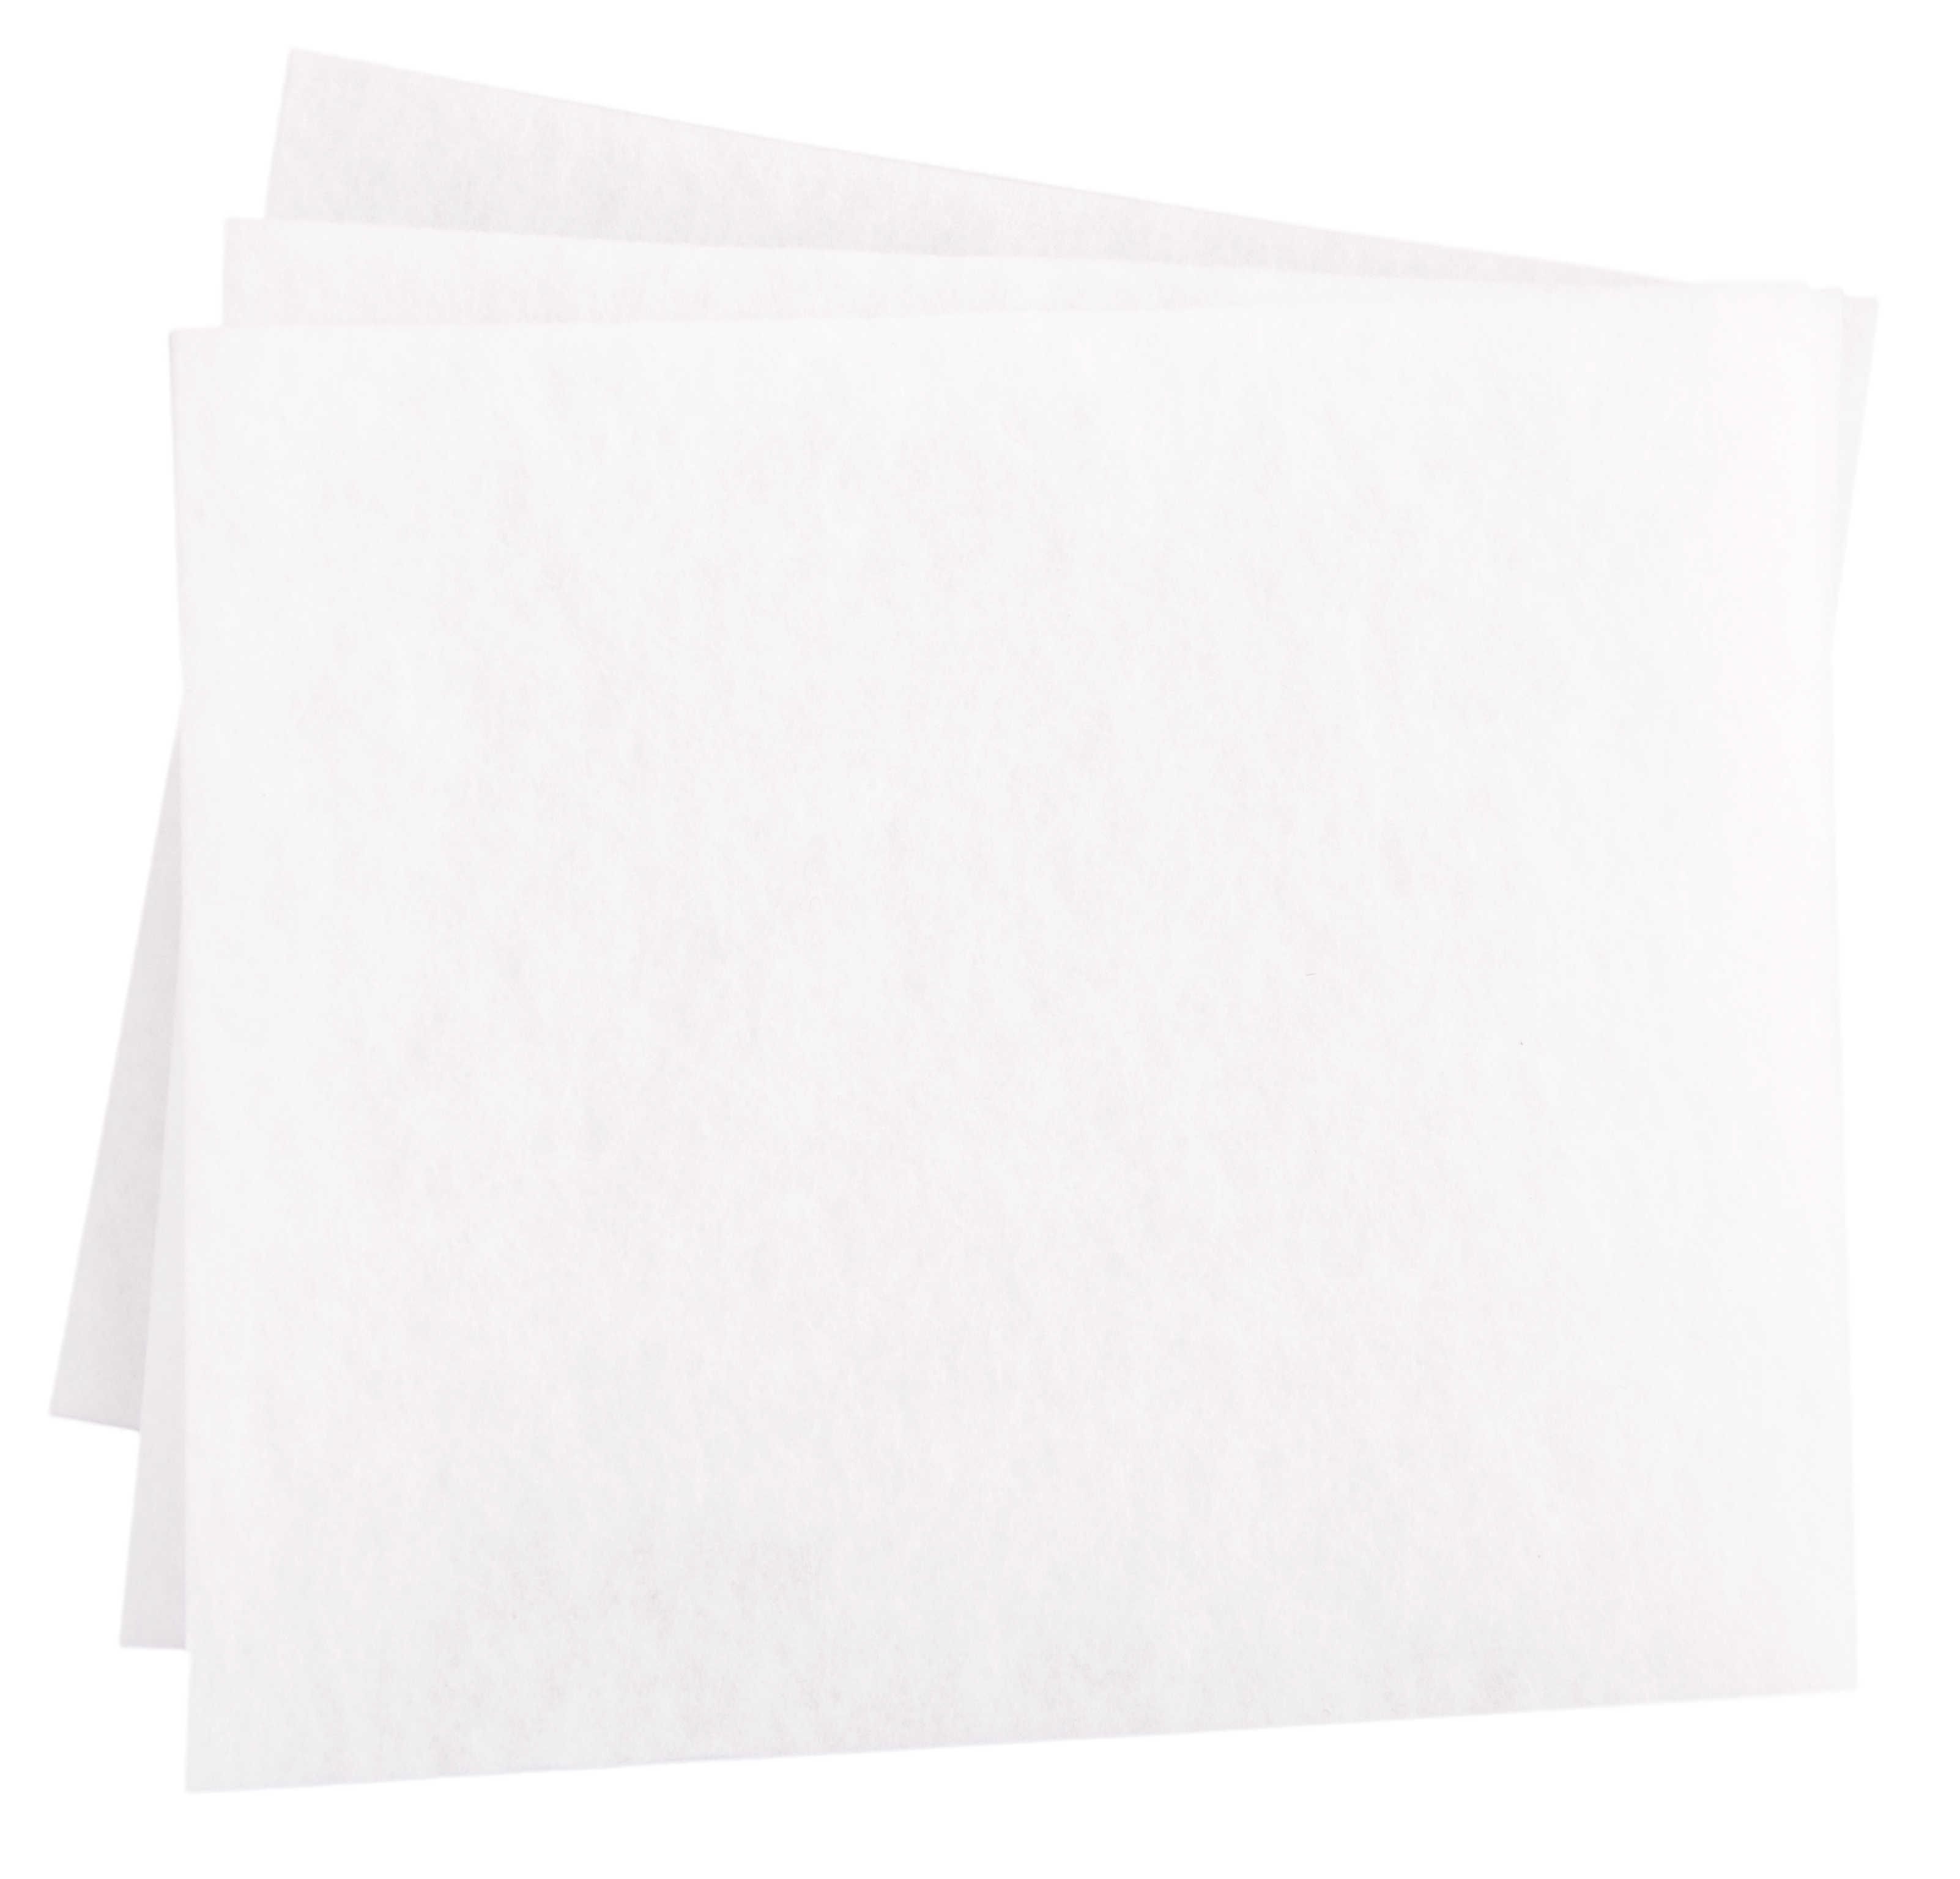 Acetec Filter 18/24/PD/PDX/PD+/RD 3-pack